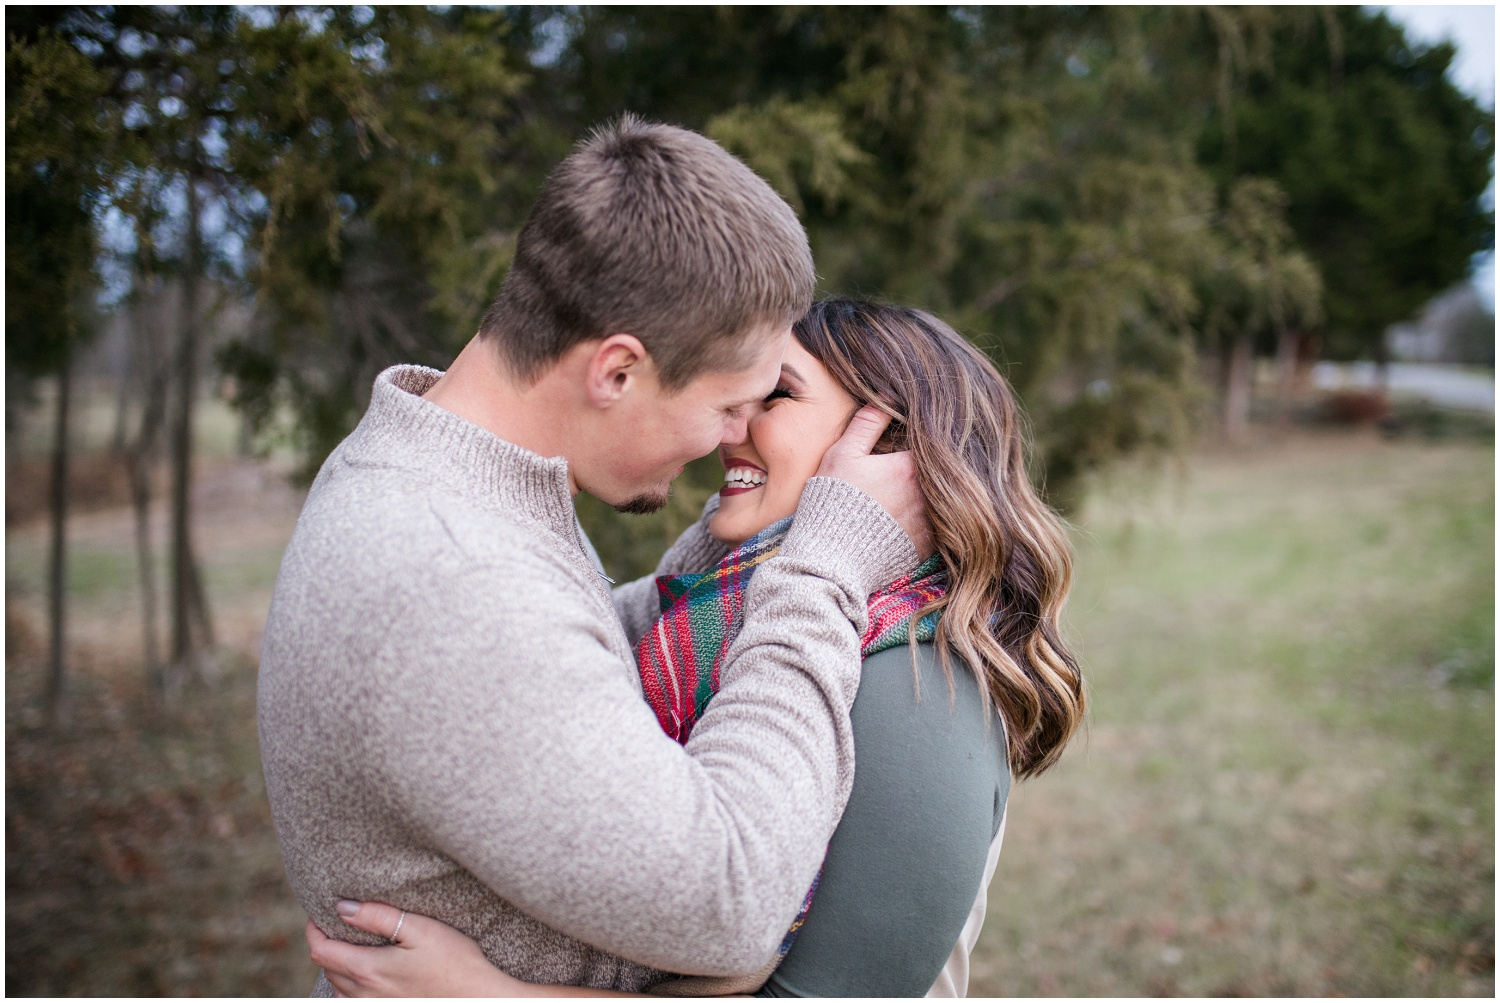 louisvlle-country-engagement-session_0107.jpg